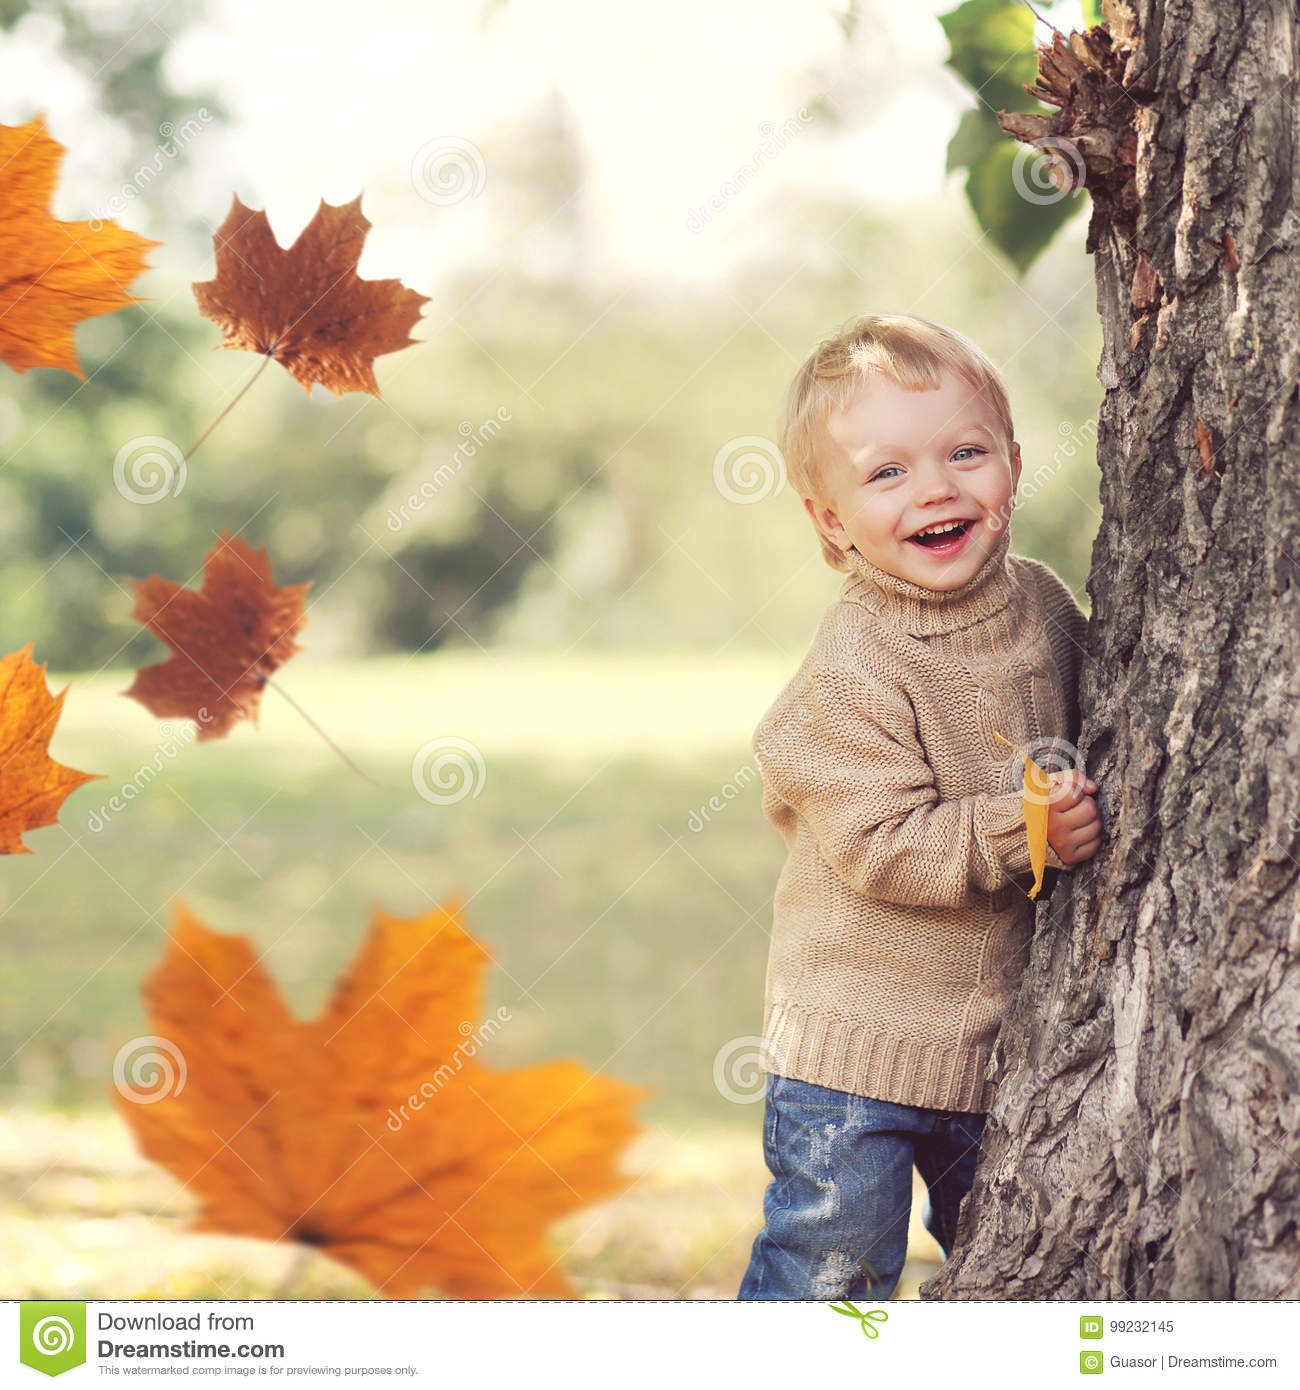 Autumn portrait of happy child playing having fun with flying yellow maple leaves